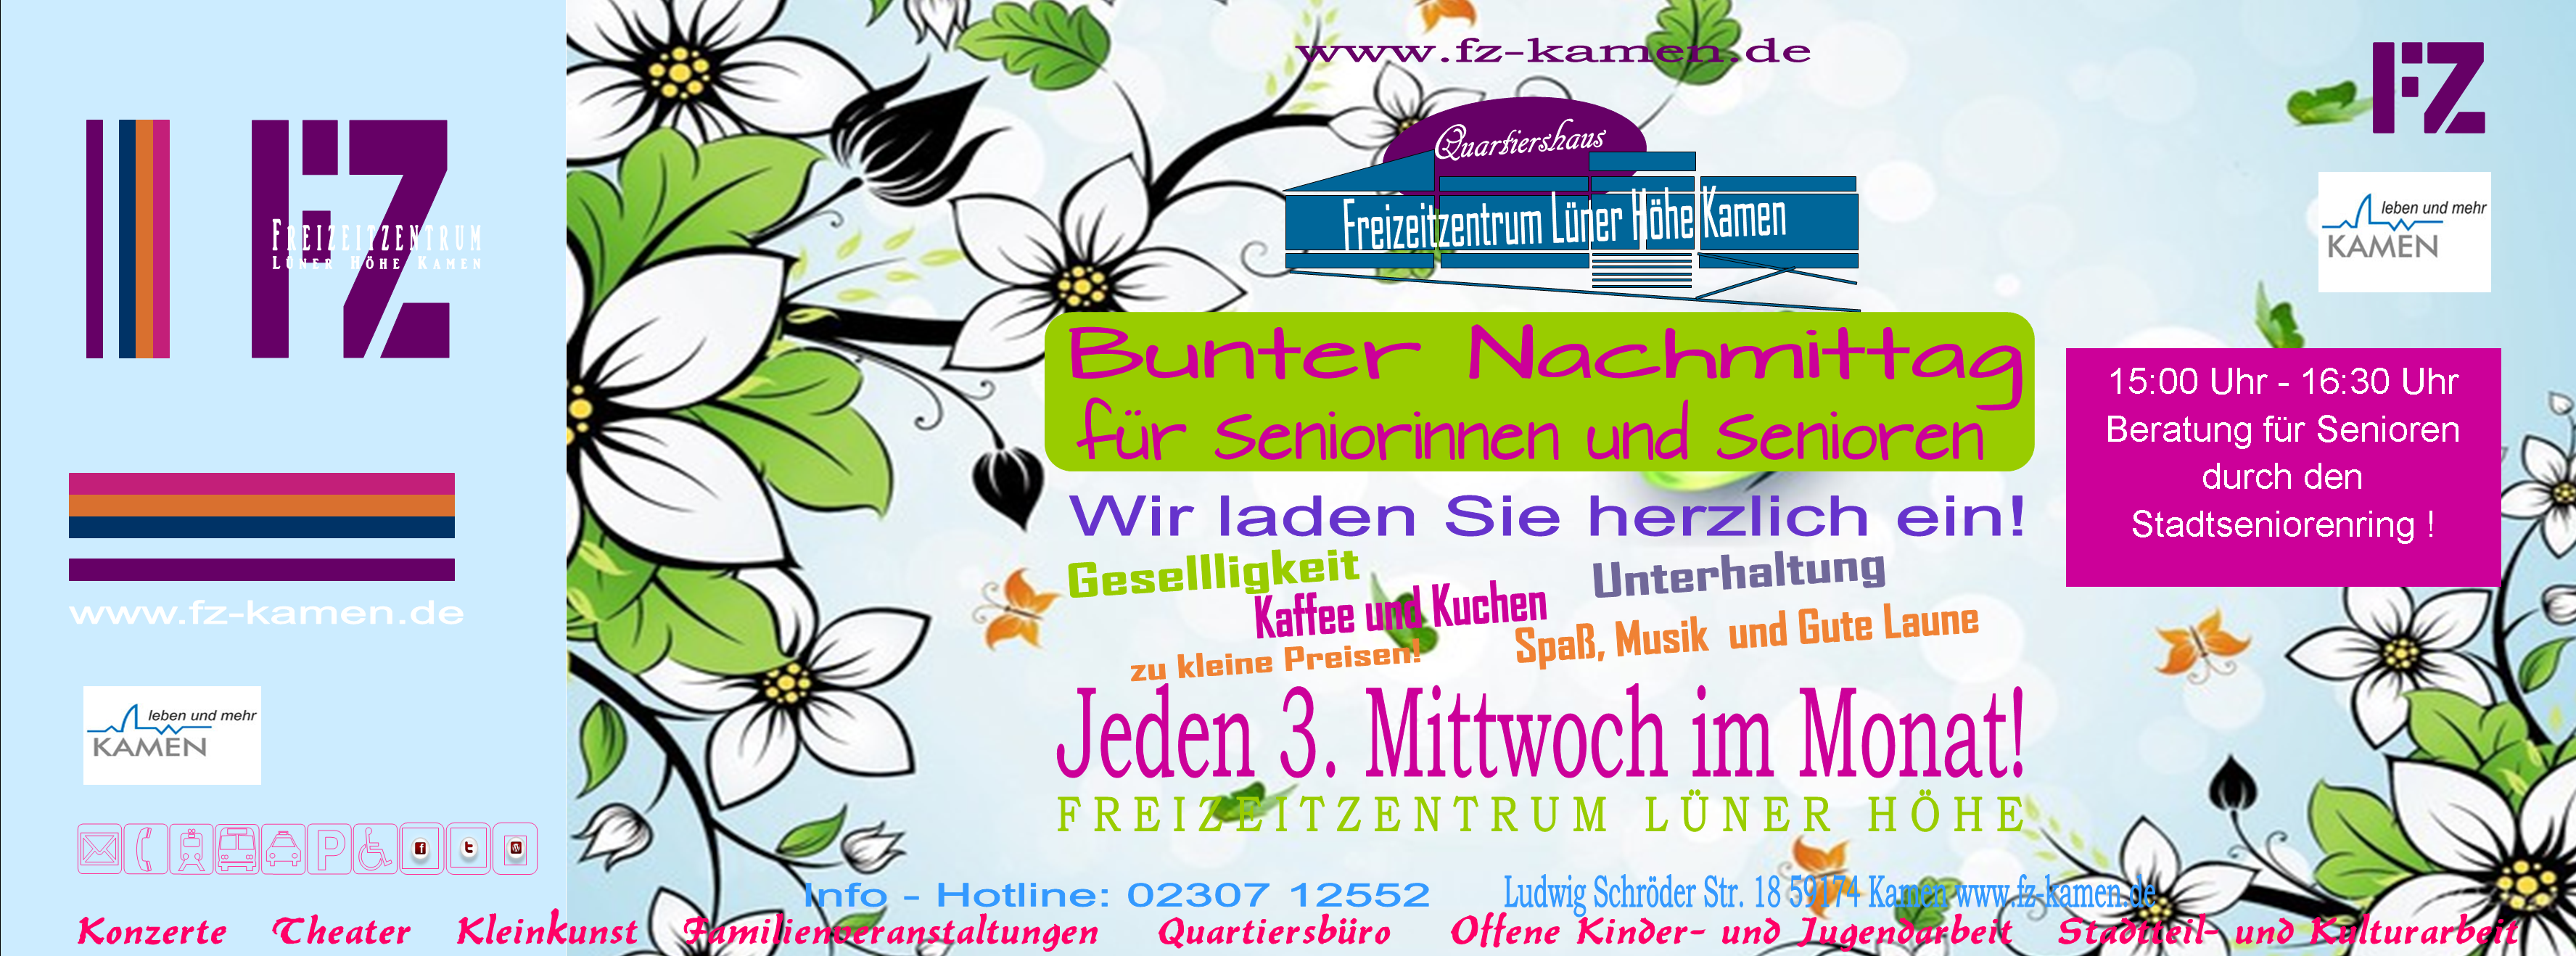 Header FZ Seniorennachmittag 2019 neu